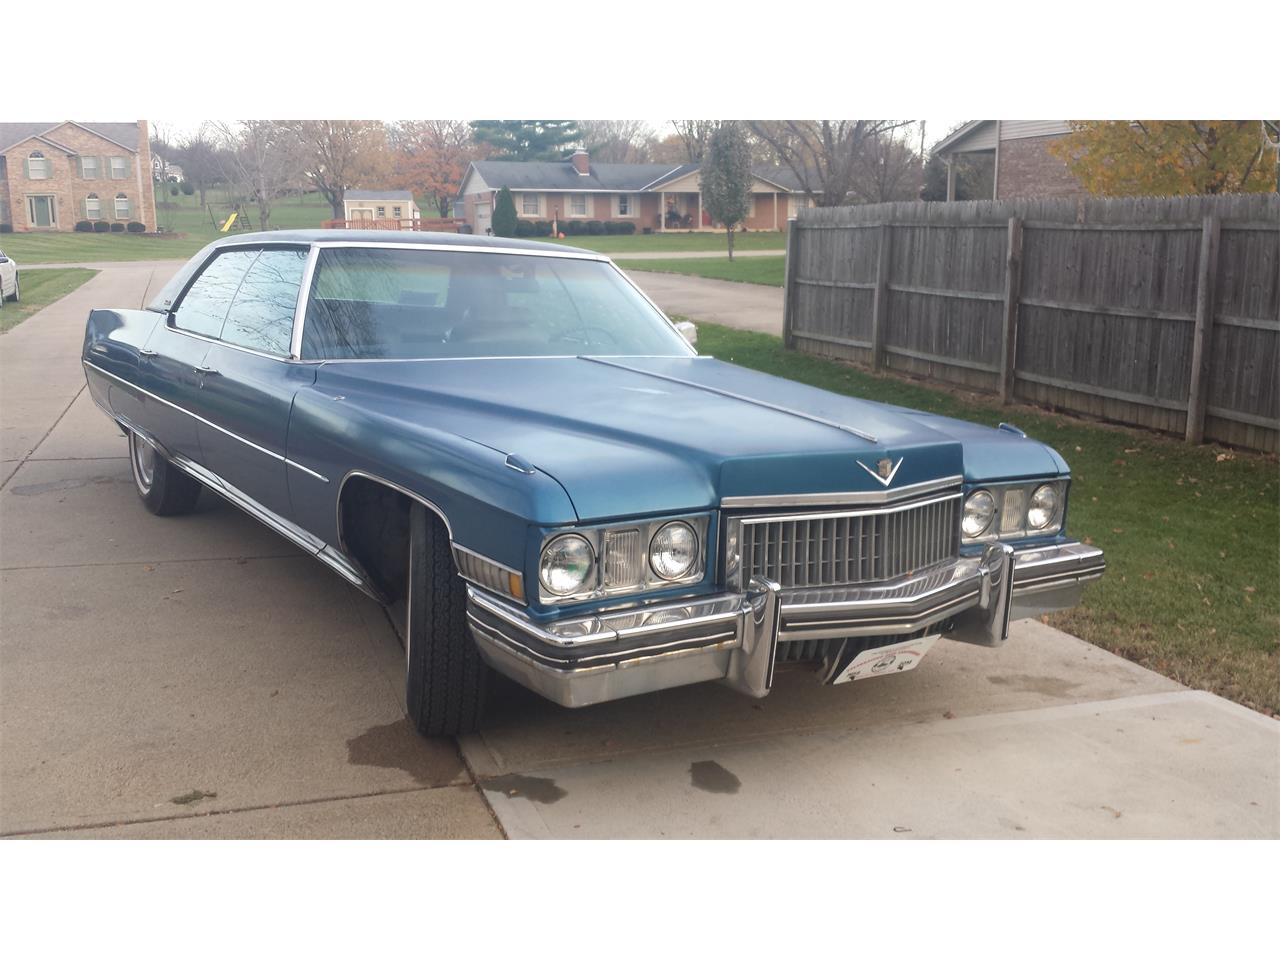 Large Picture of 1973 Cadillac DeVille located in Hamilton Ohio - $5,500.00 Offered by a Private Seller - BYGT